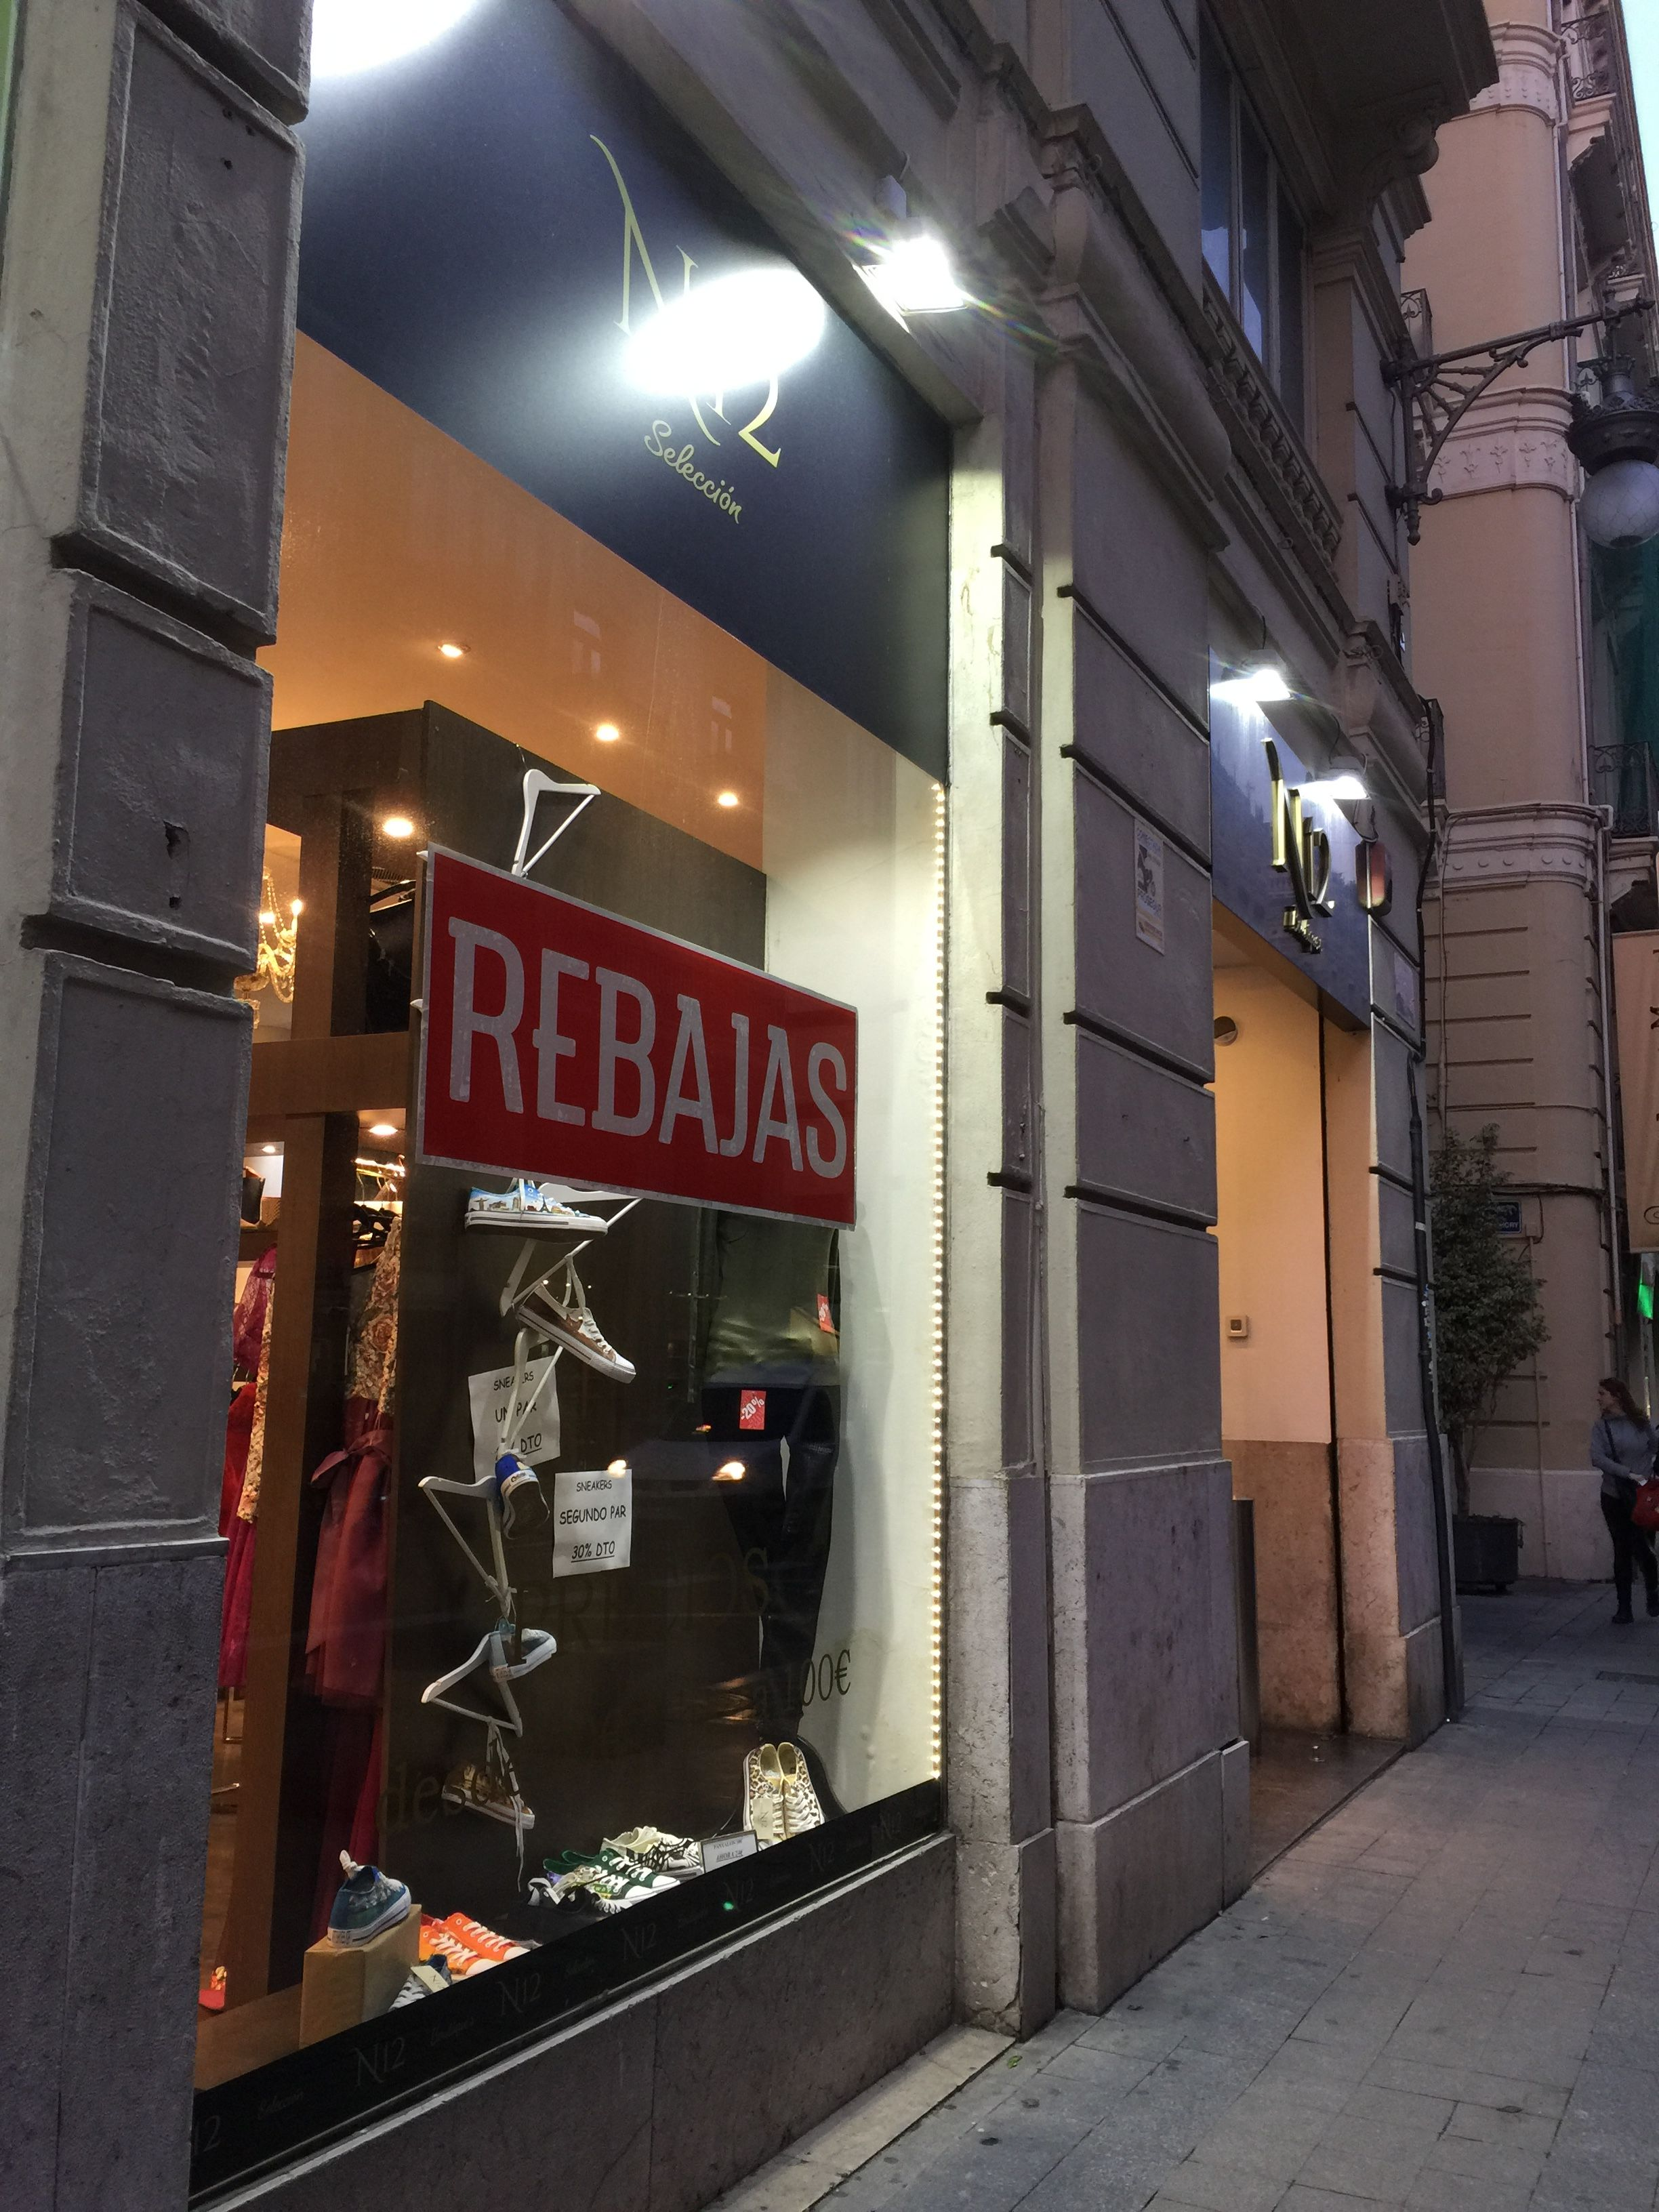 The entire month of January is like one HUGE retail sale in Valencia.